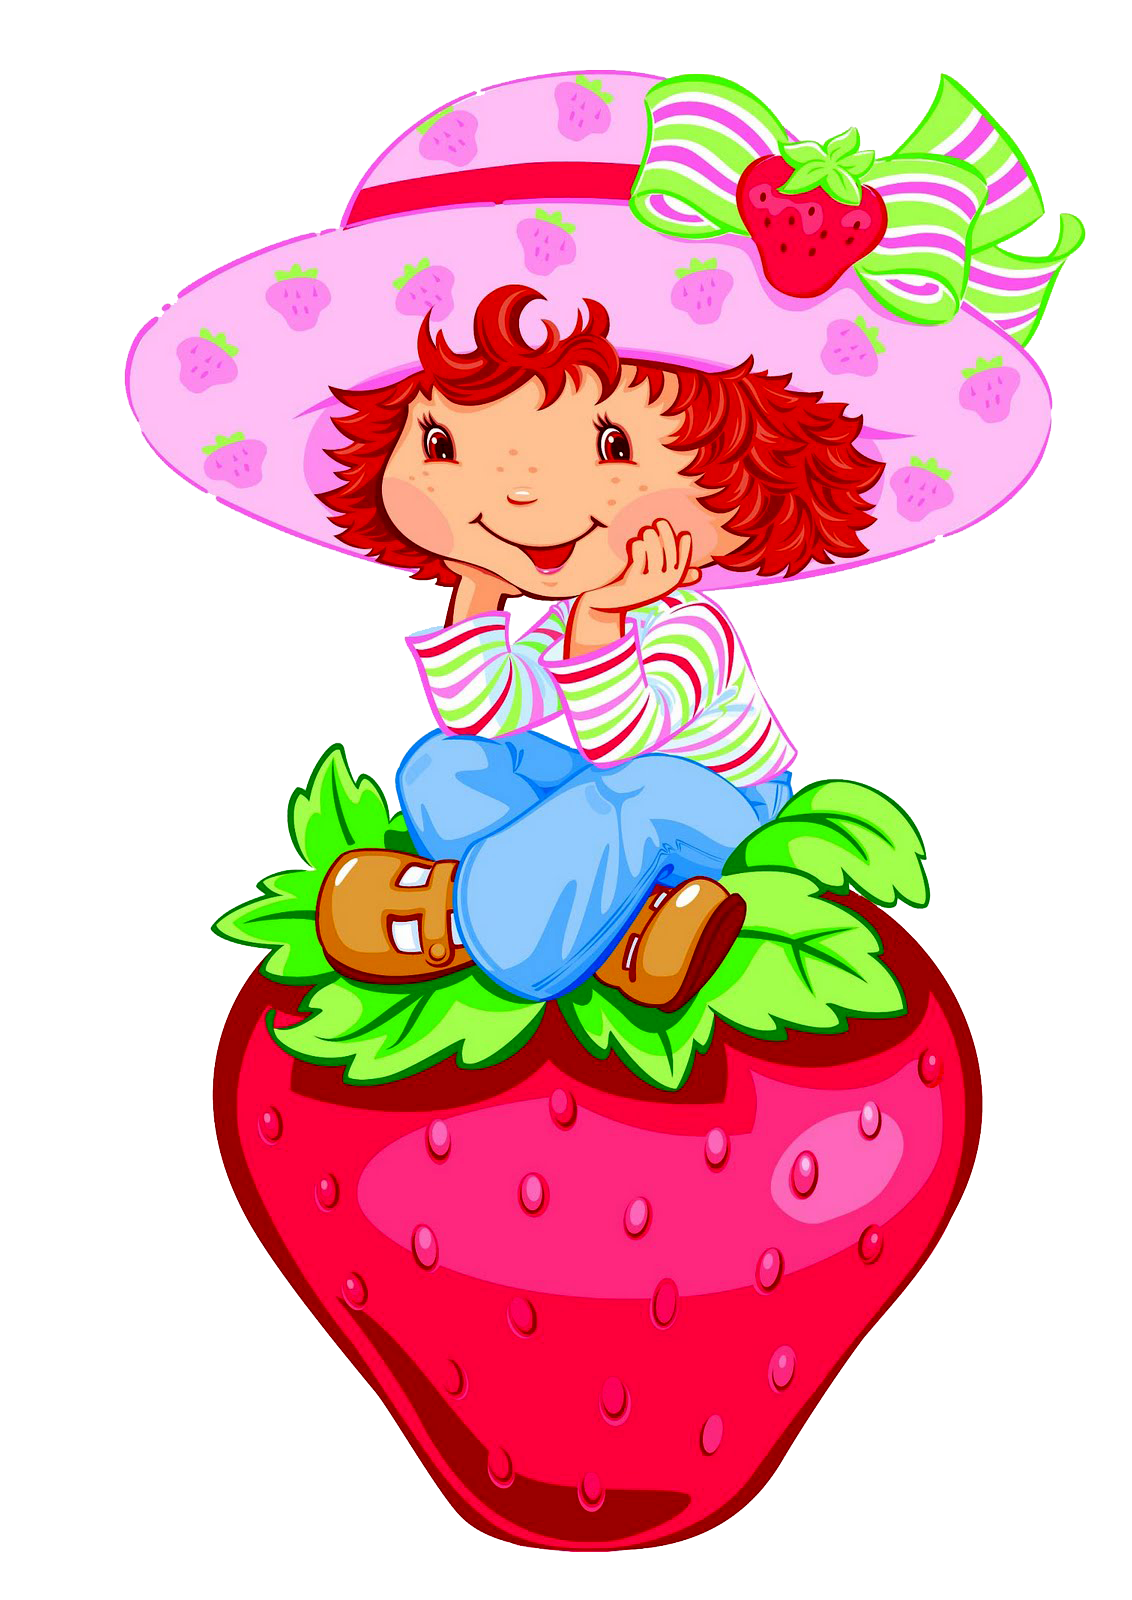 Zoe together with Moranguinho Em   6920 additionally Fondos Rositas CjeaxEM4M additionally 5 Tips For Managing Bloggers For Hire And Other Freelancers From The Gang On Sesame Street as well Big Bird Clipart. on rosita background